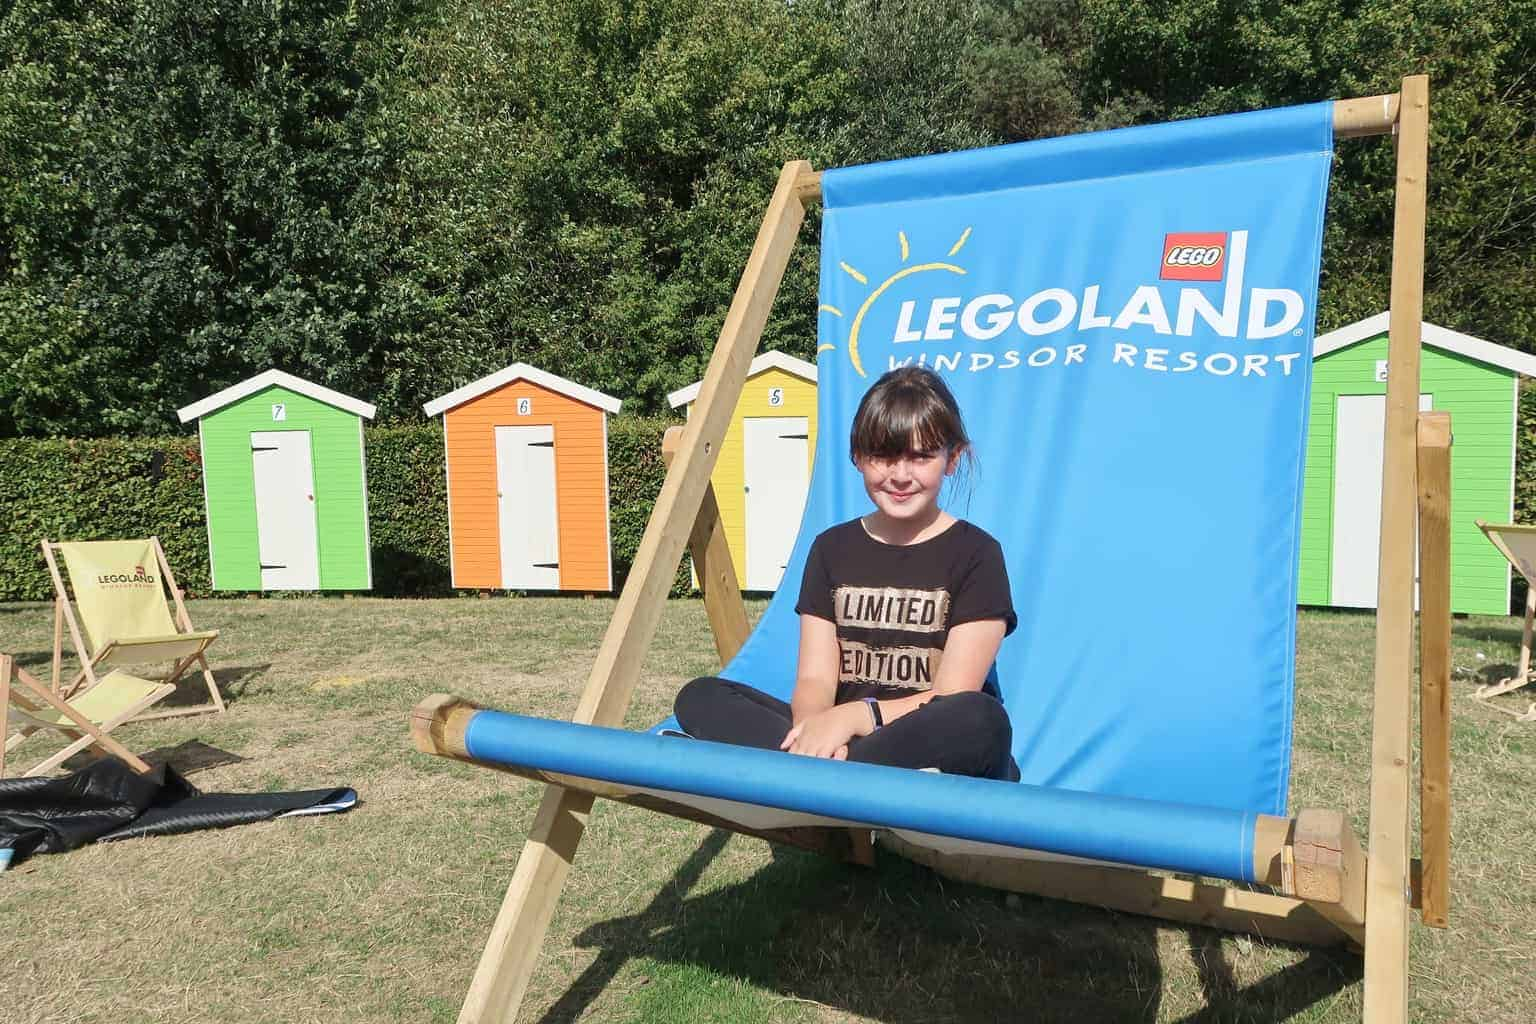 LEGOLAND Windsor Summer of Fun